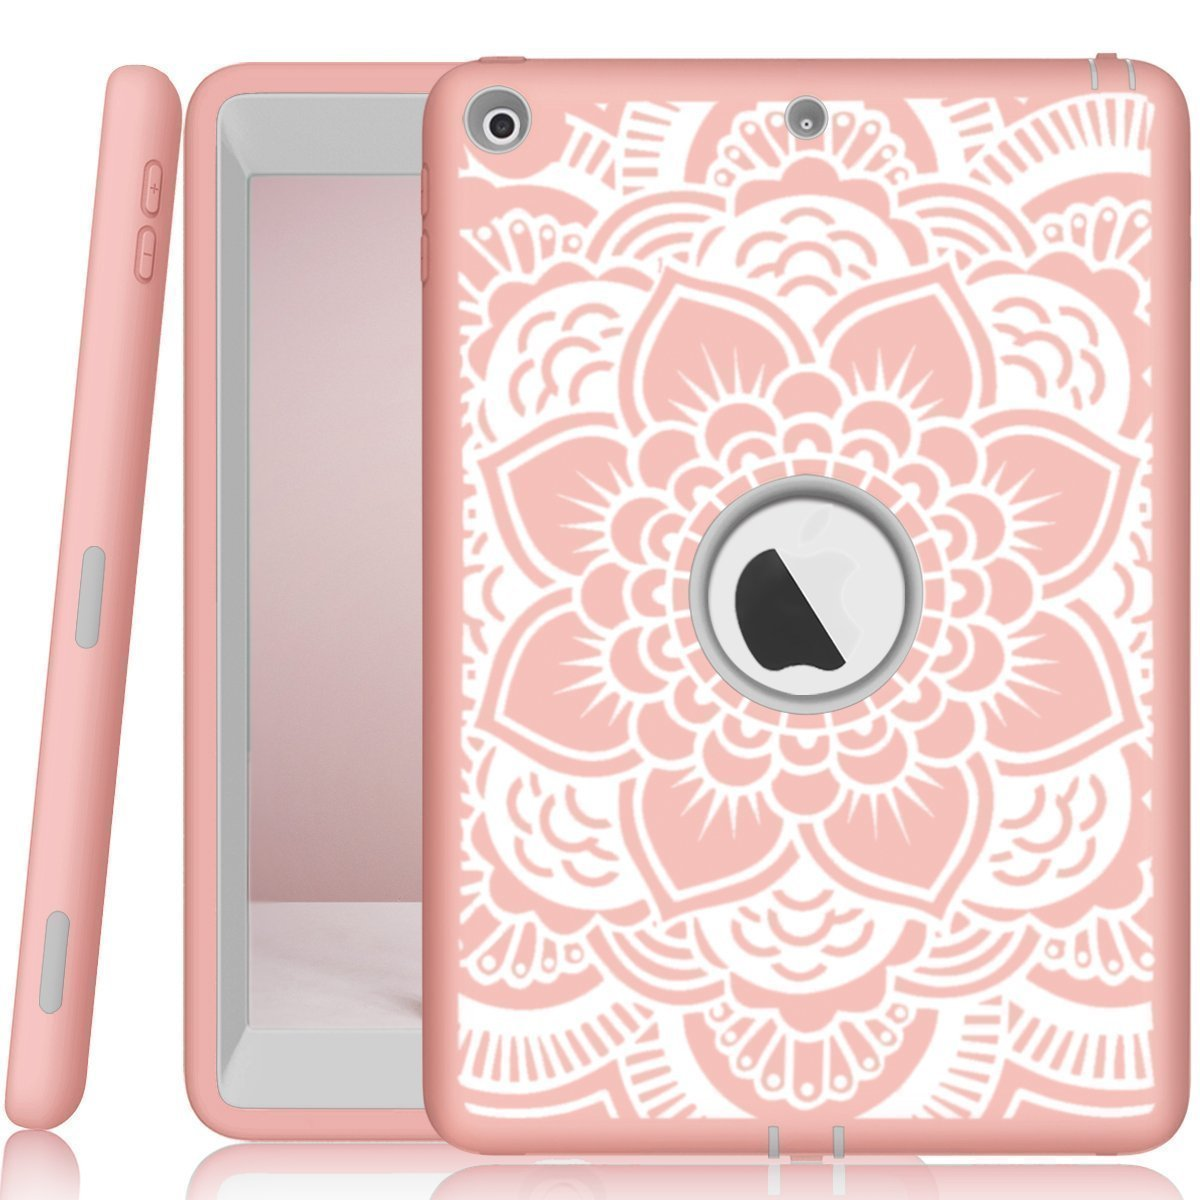 iPad case 9.7 2017 and 2018,PIXIU Heavy Duty Shockproof Full Body 3 Layer Defender Rubber Protective case Cover for iPad 5th Generation A1822 A1823 andiPad 6th A1893 A1954 FlowerRose Gold